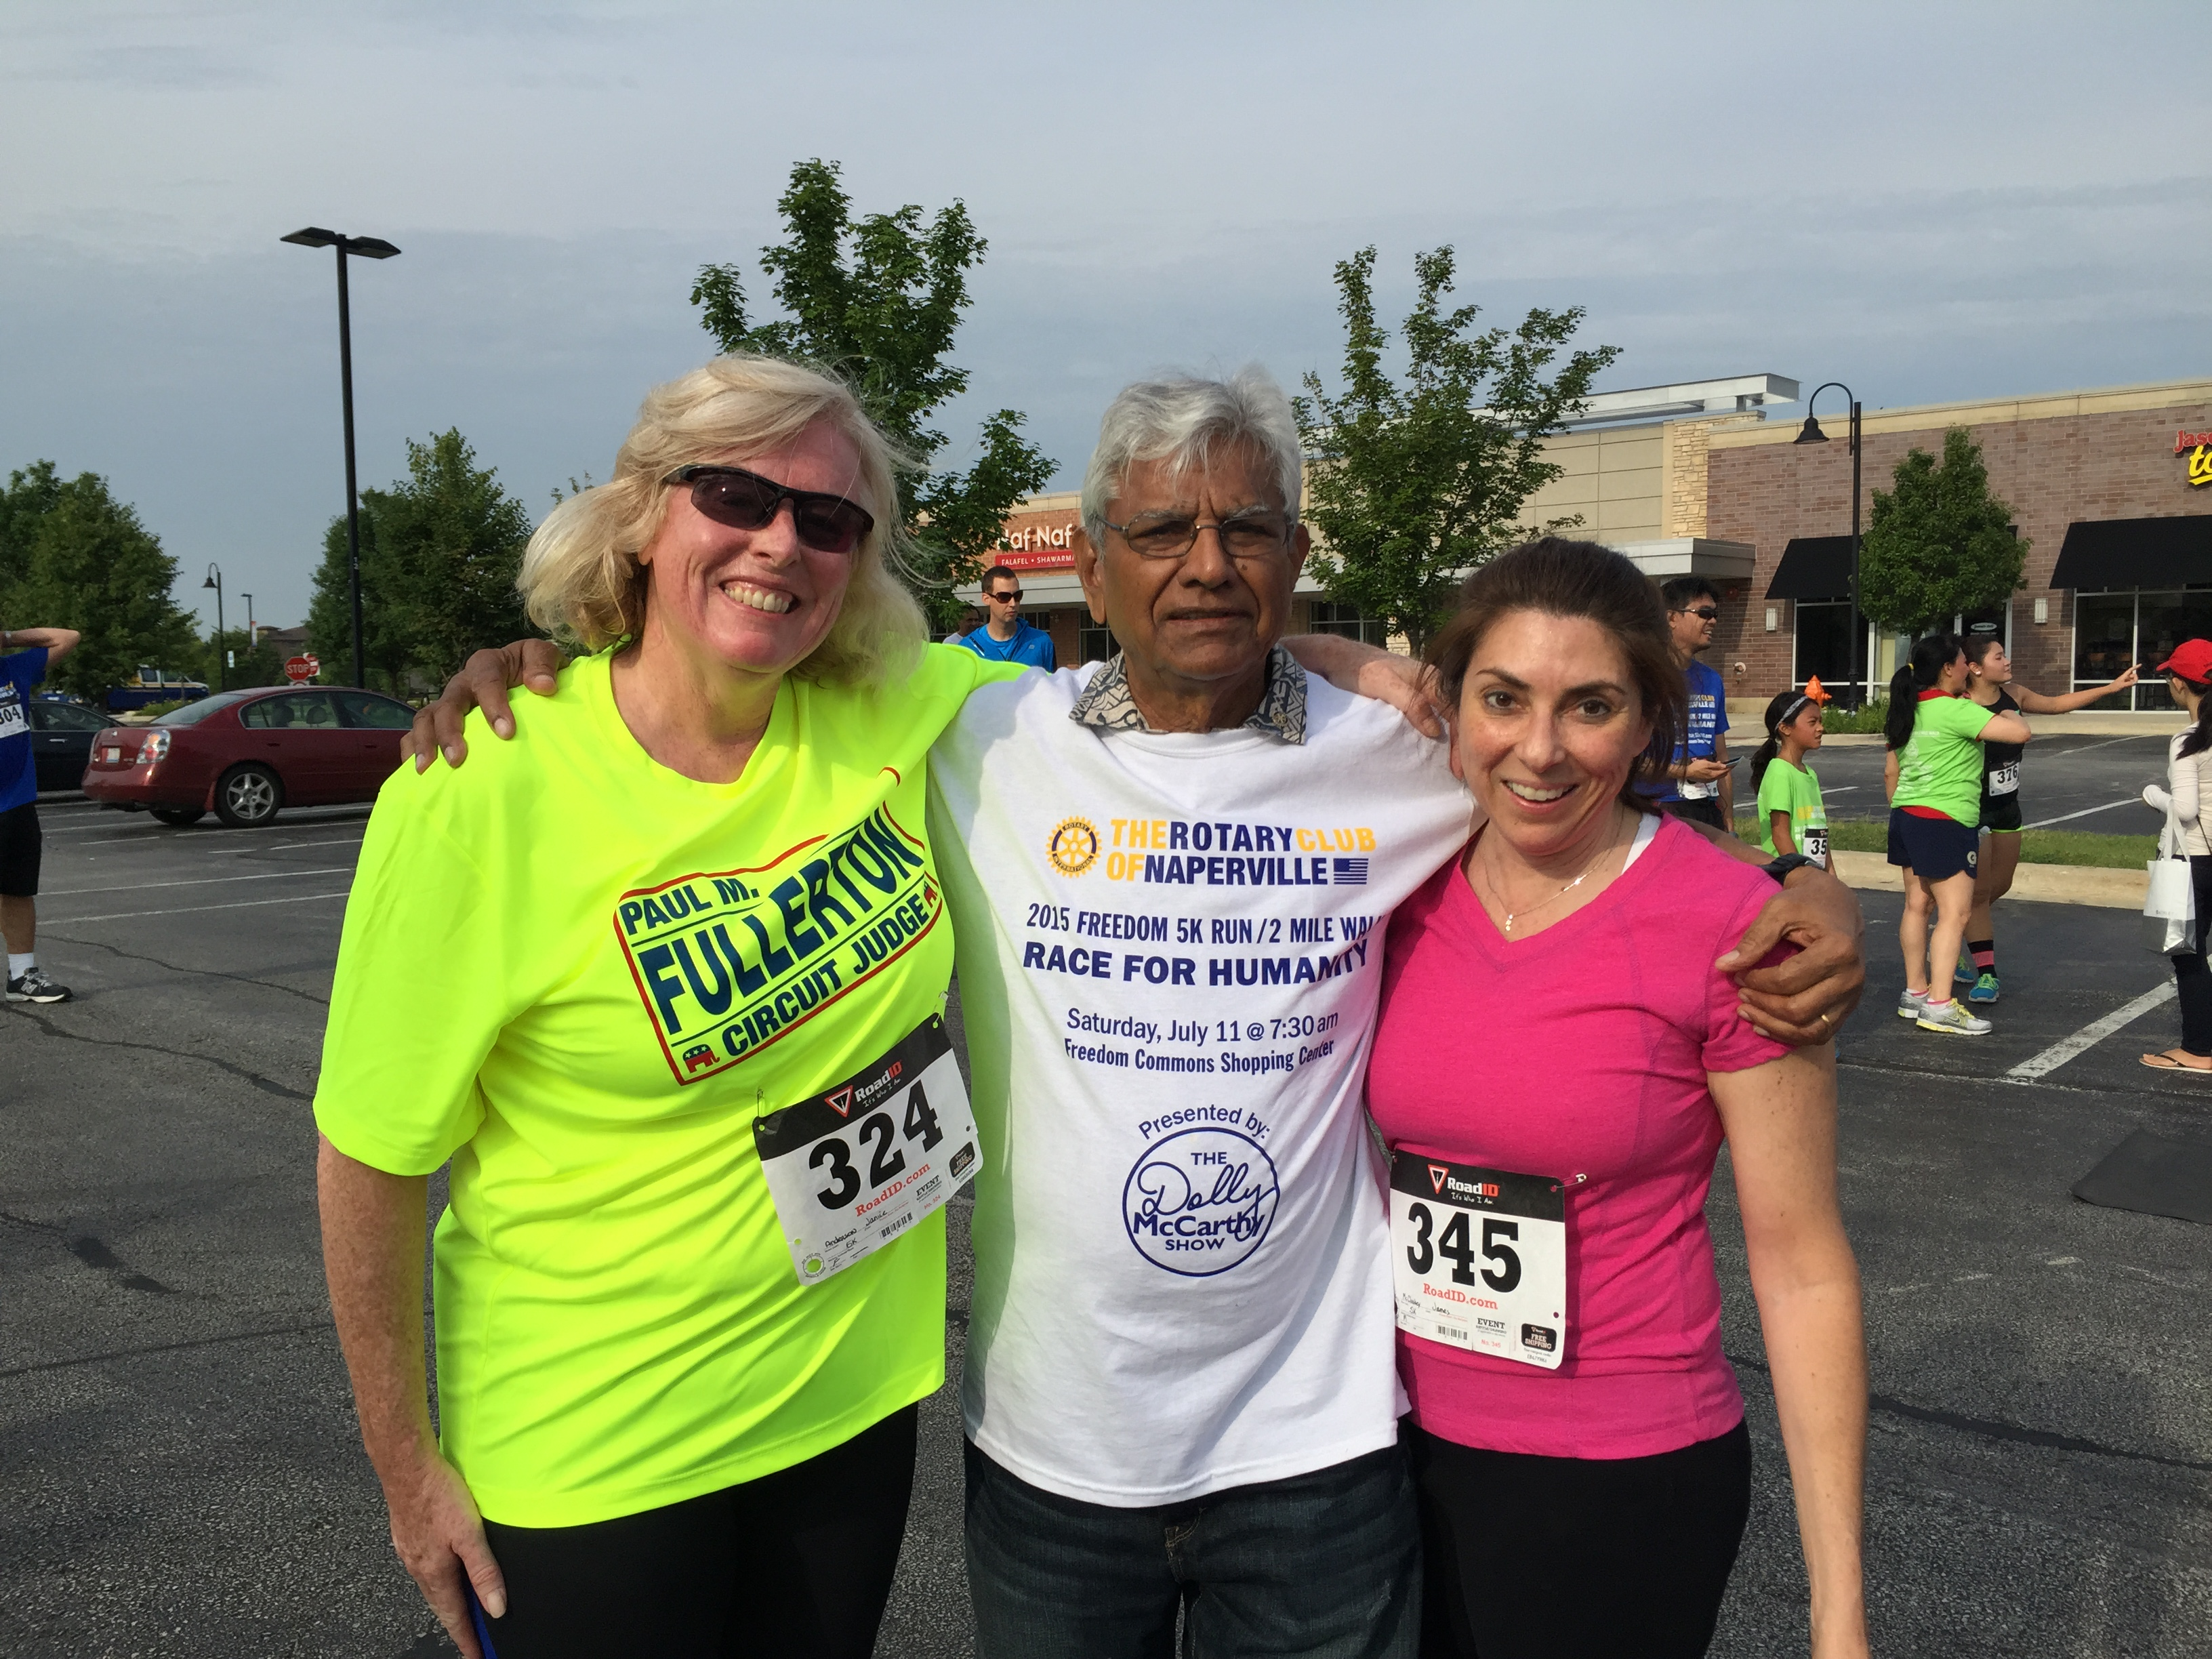 /Rotary-Club-of-Naperville-5MIle-Run-and-2-MIle-WalkIMG_1021